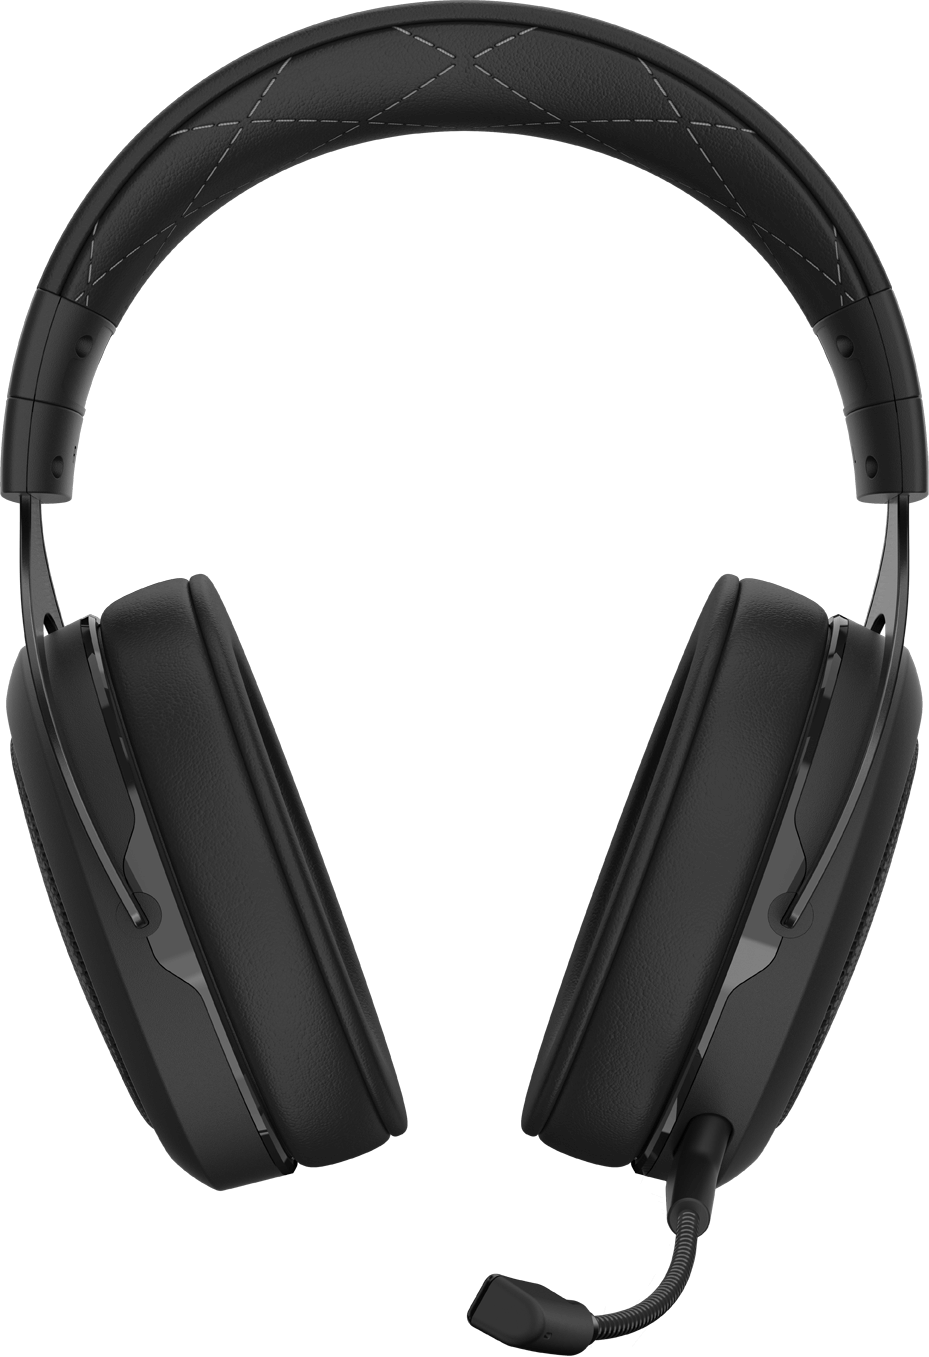 HS70 PRO GAMING HEADSET - CRAFTED FOR COMFORT